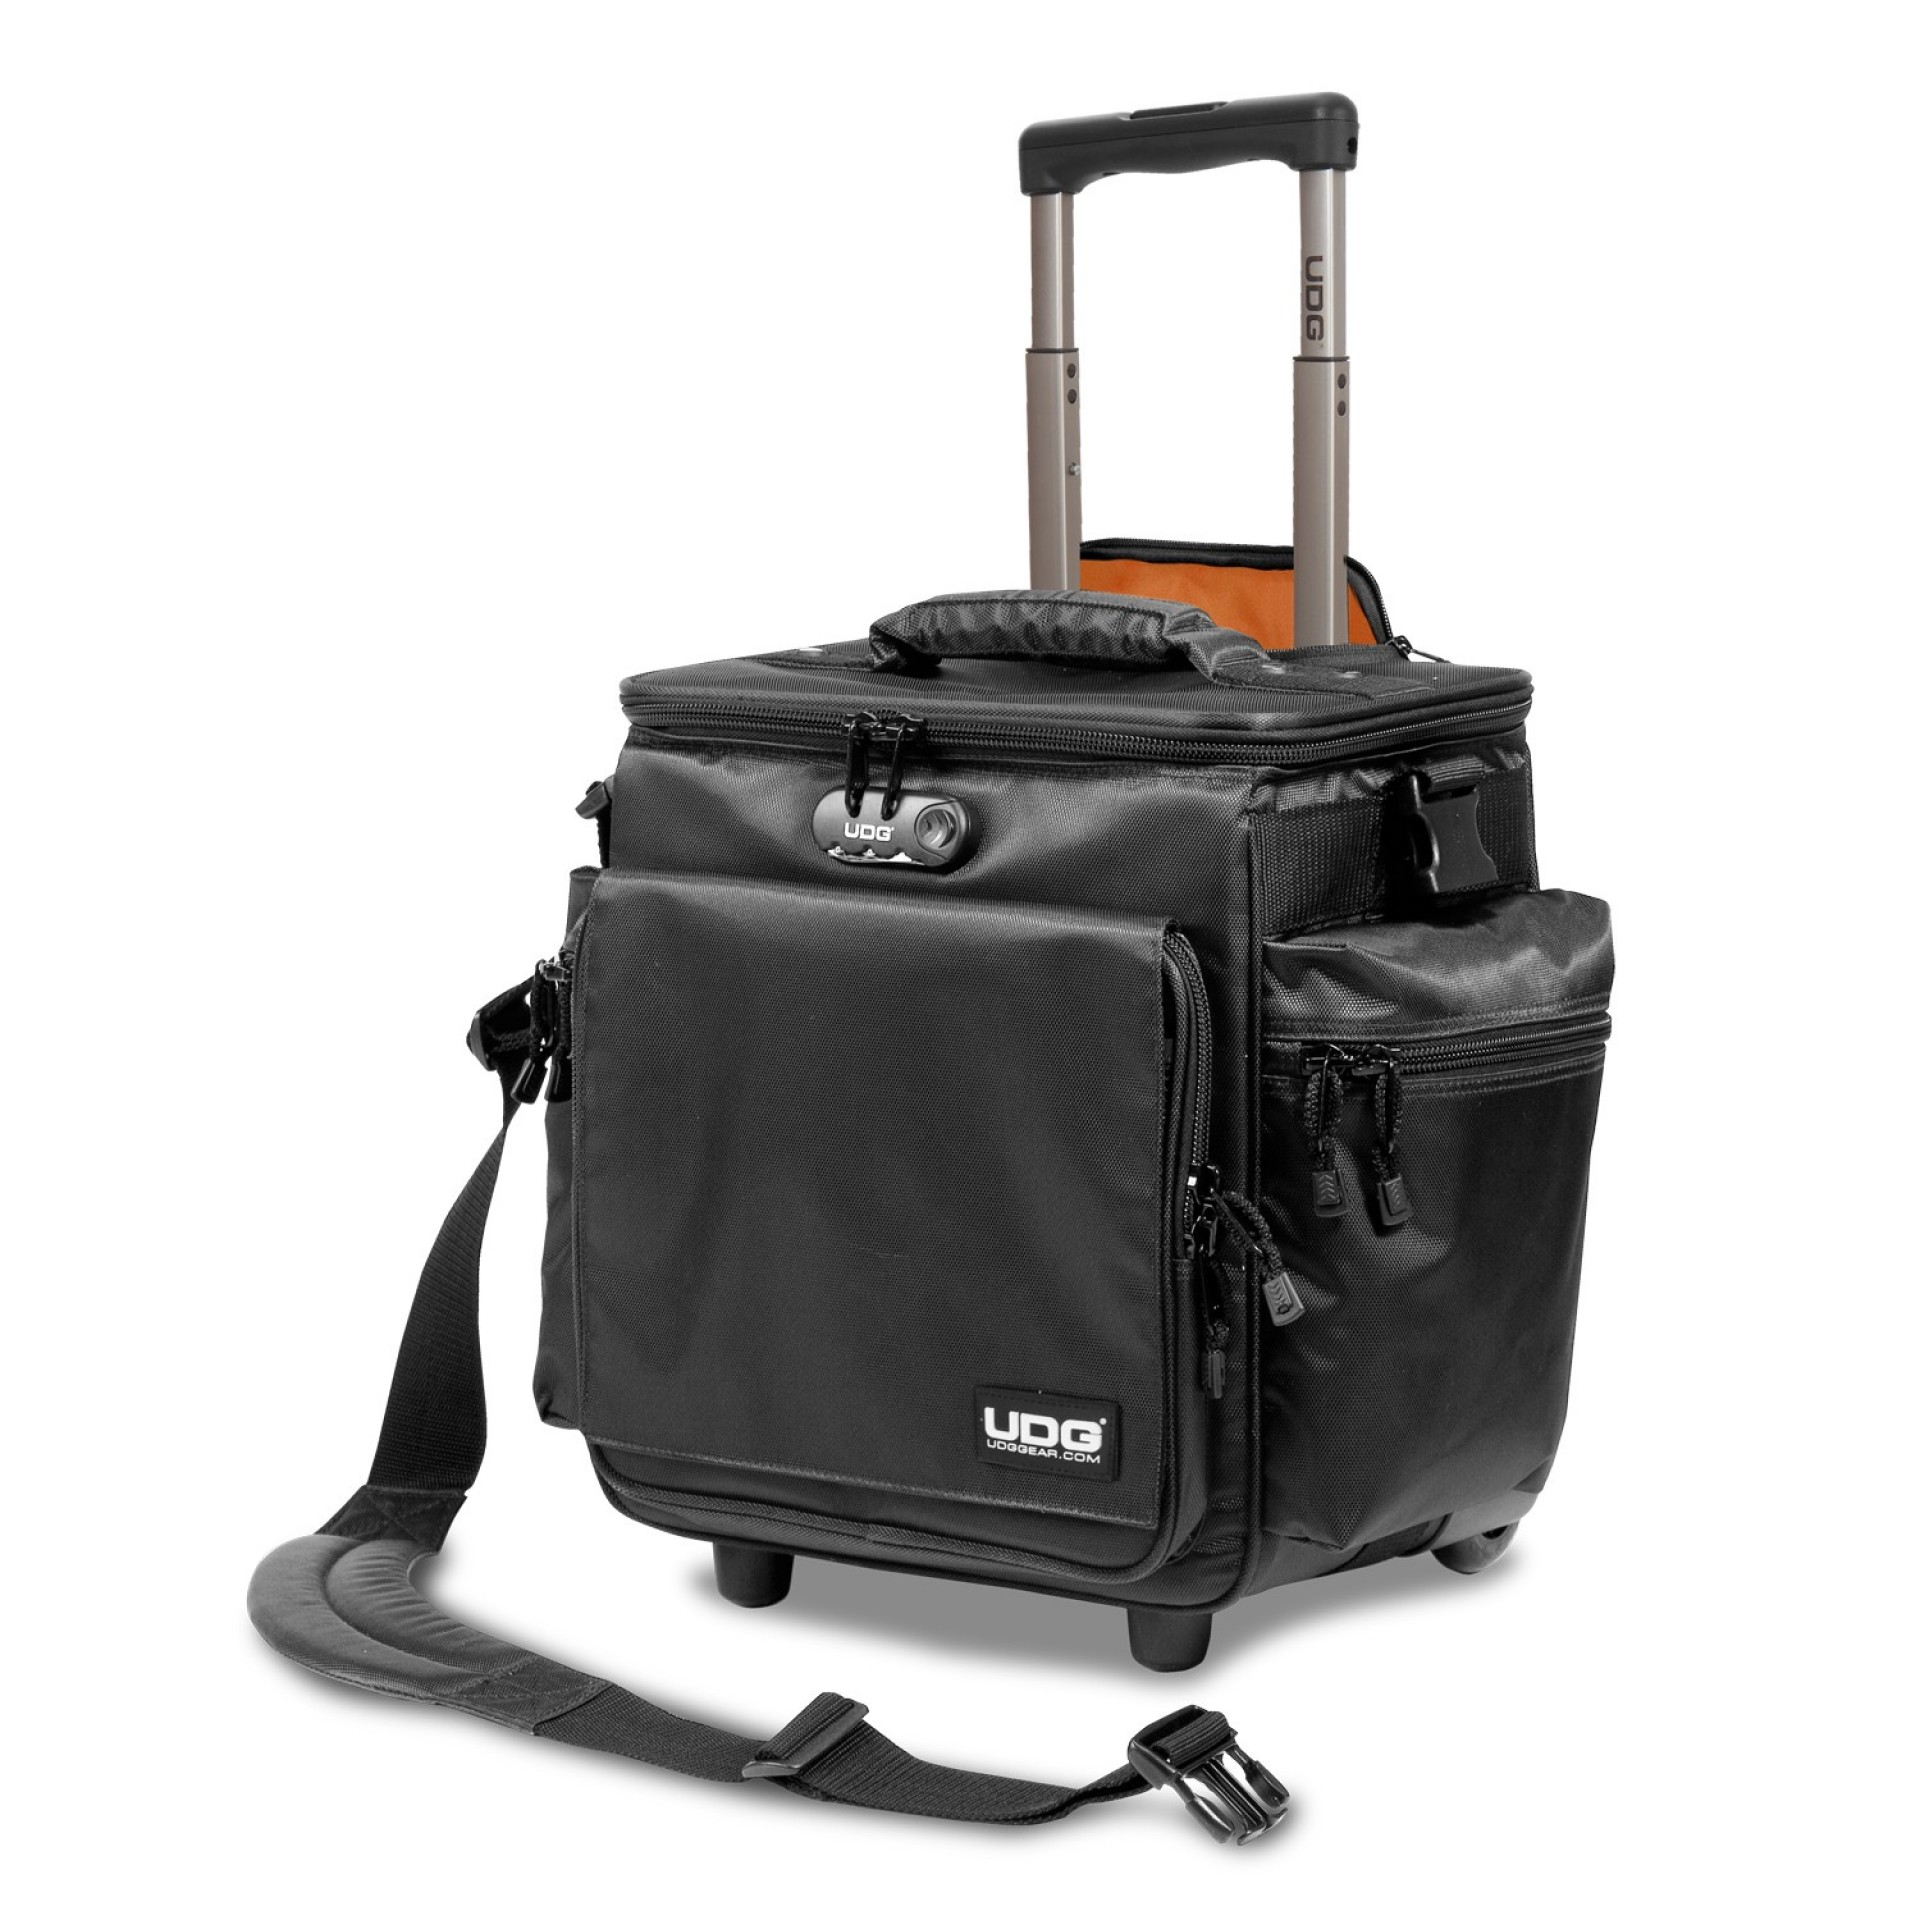 UDG Ultimate SlingBag Trolley DeLuxe Black, Orange insideMK2